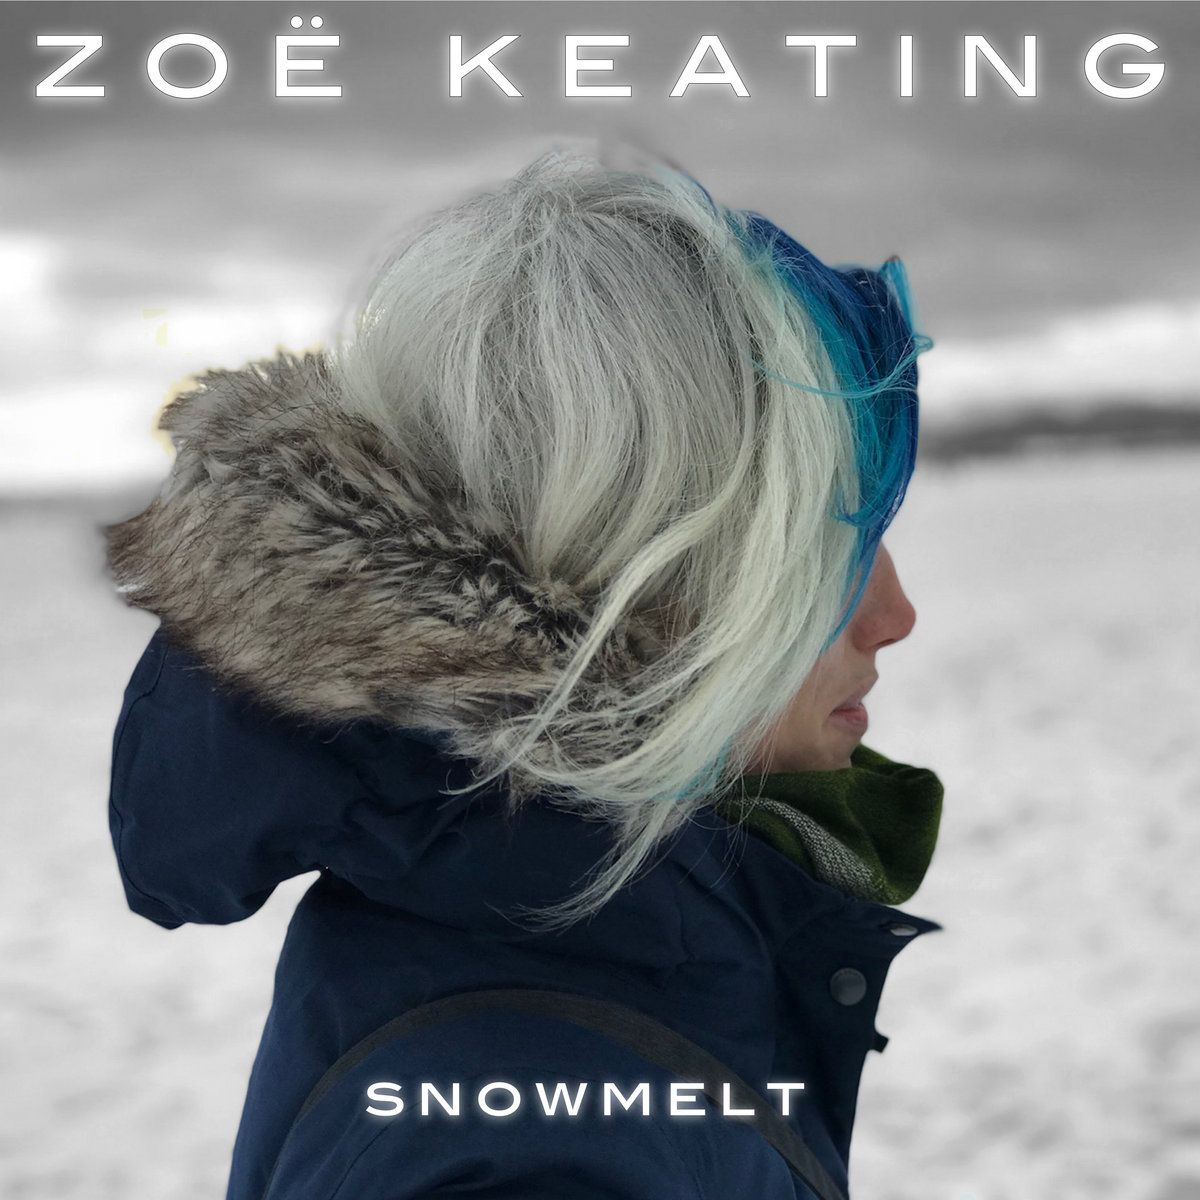 Image result for zoe keating snowmelt ep cover